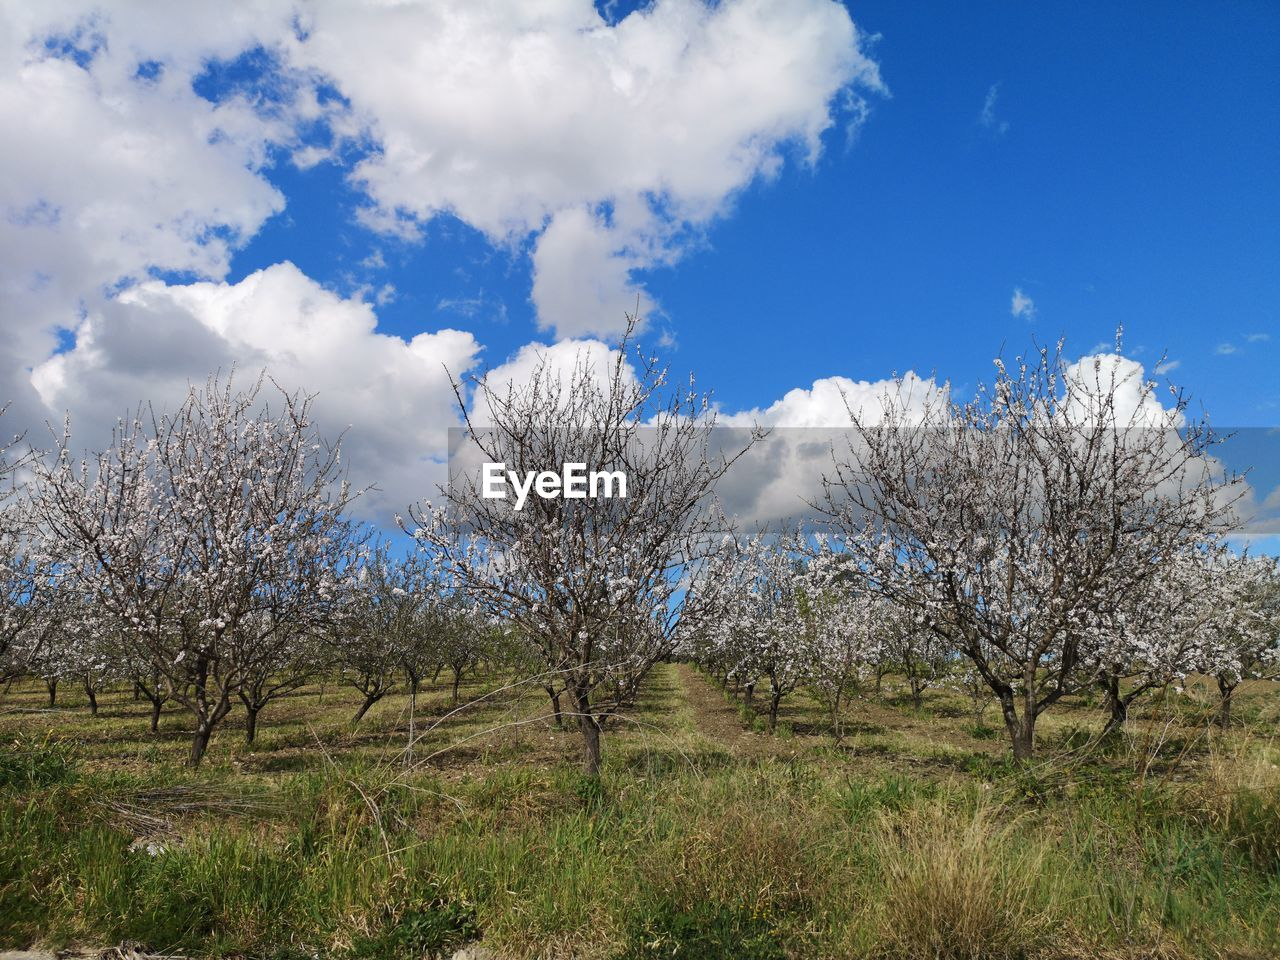 sky, plant, tree, cloud - sky, beauty in nature, tranquility, tranquil scene, land, scenics - nature, no people, day, field, non-urban scene, growth, nature, landscape, environment, blue, grass, low angle view, outdoors